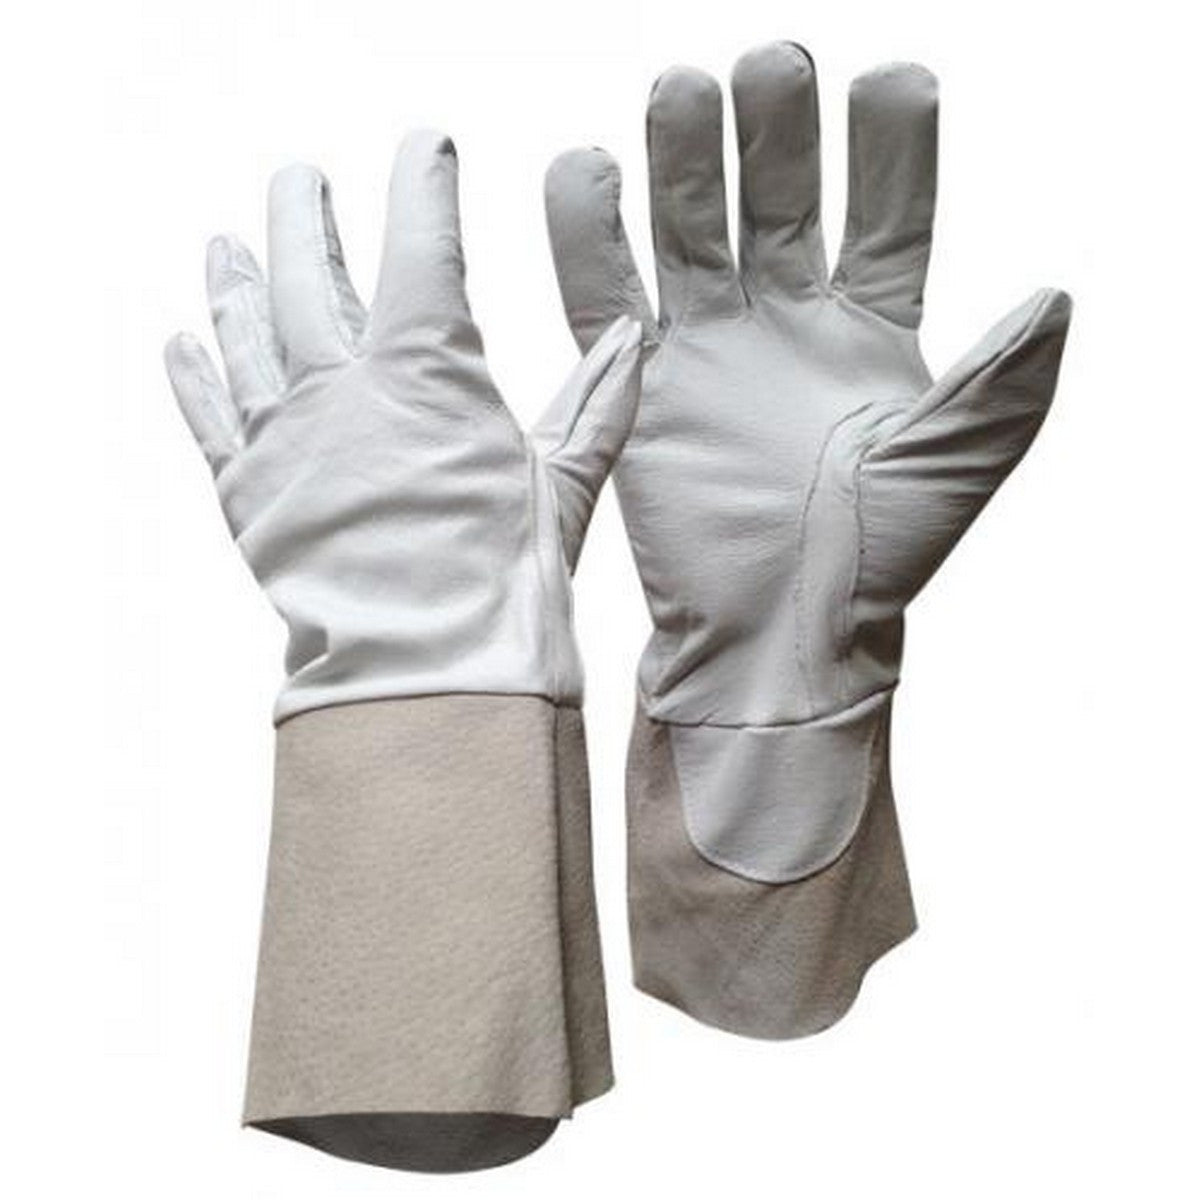 Image of Tig Welding Gauntlet Glove - 30cm